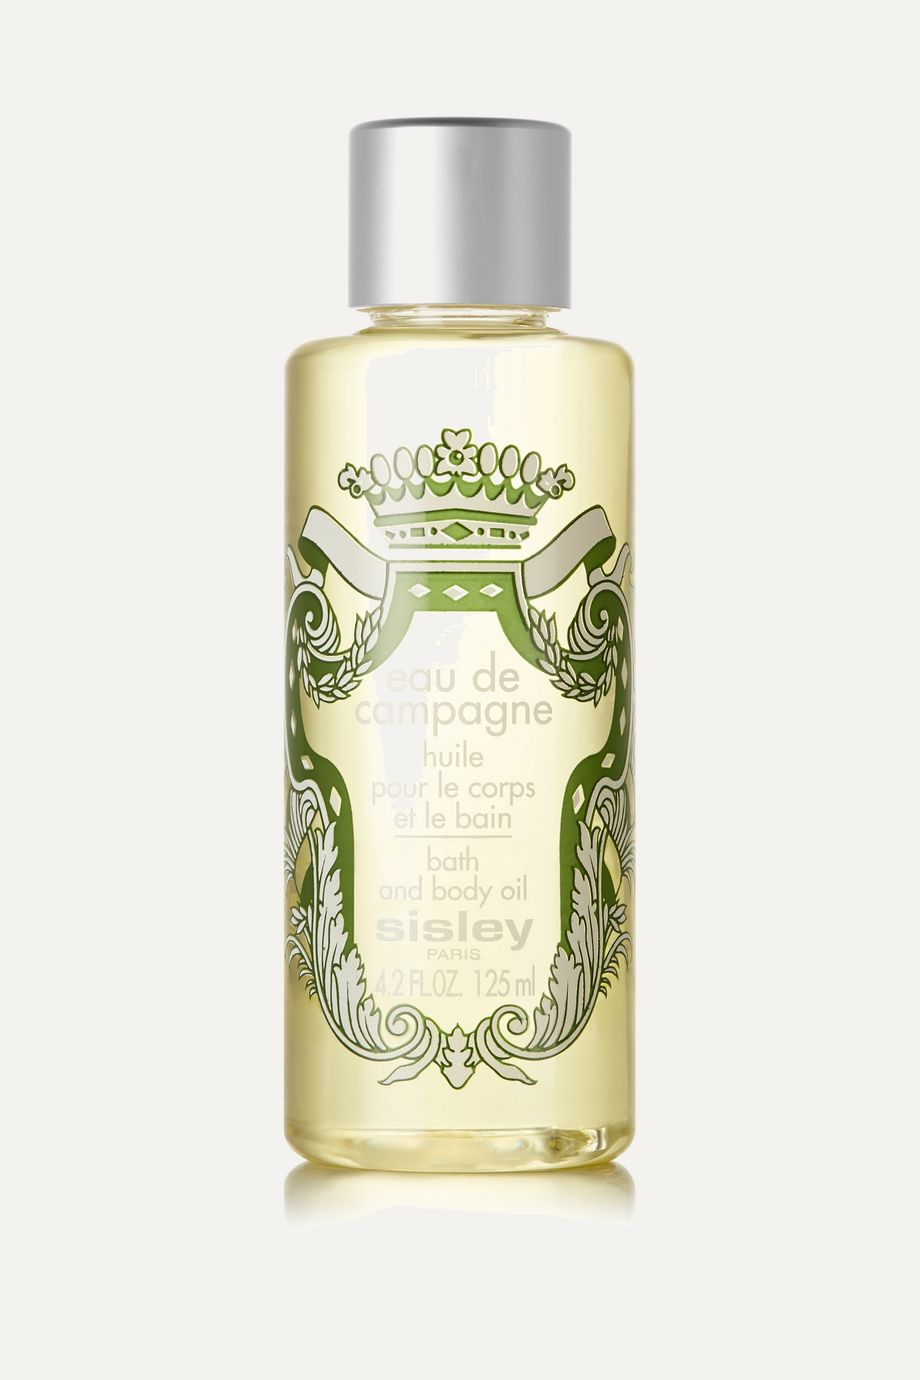 Sisley Bath Oil - Eau de Campagne, 125ml